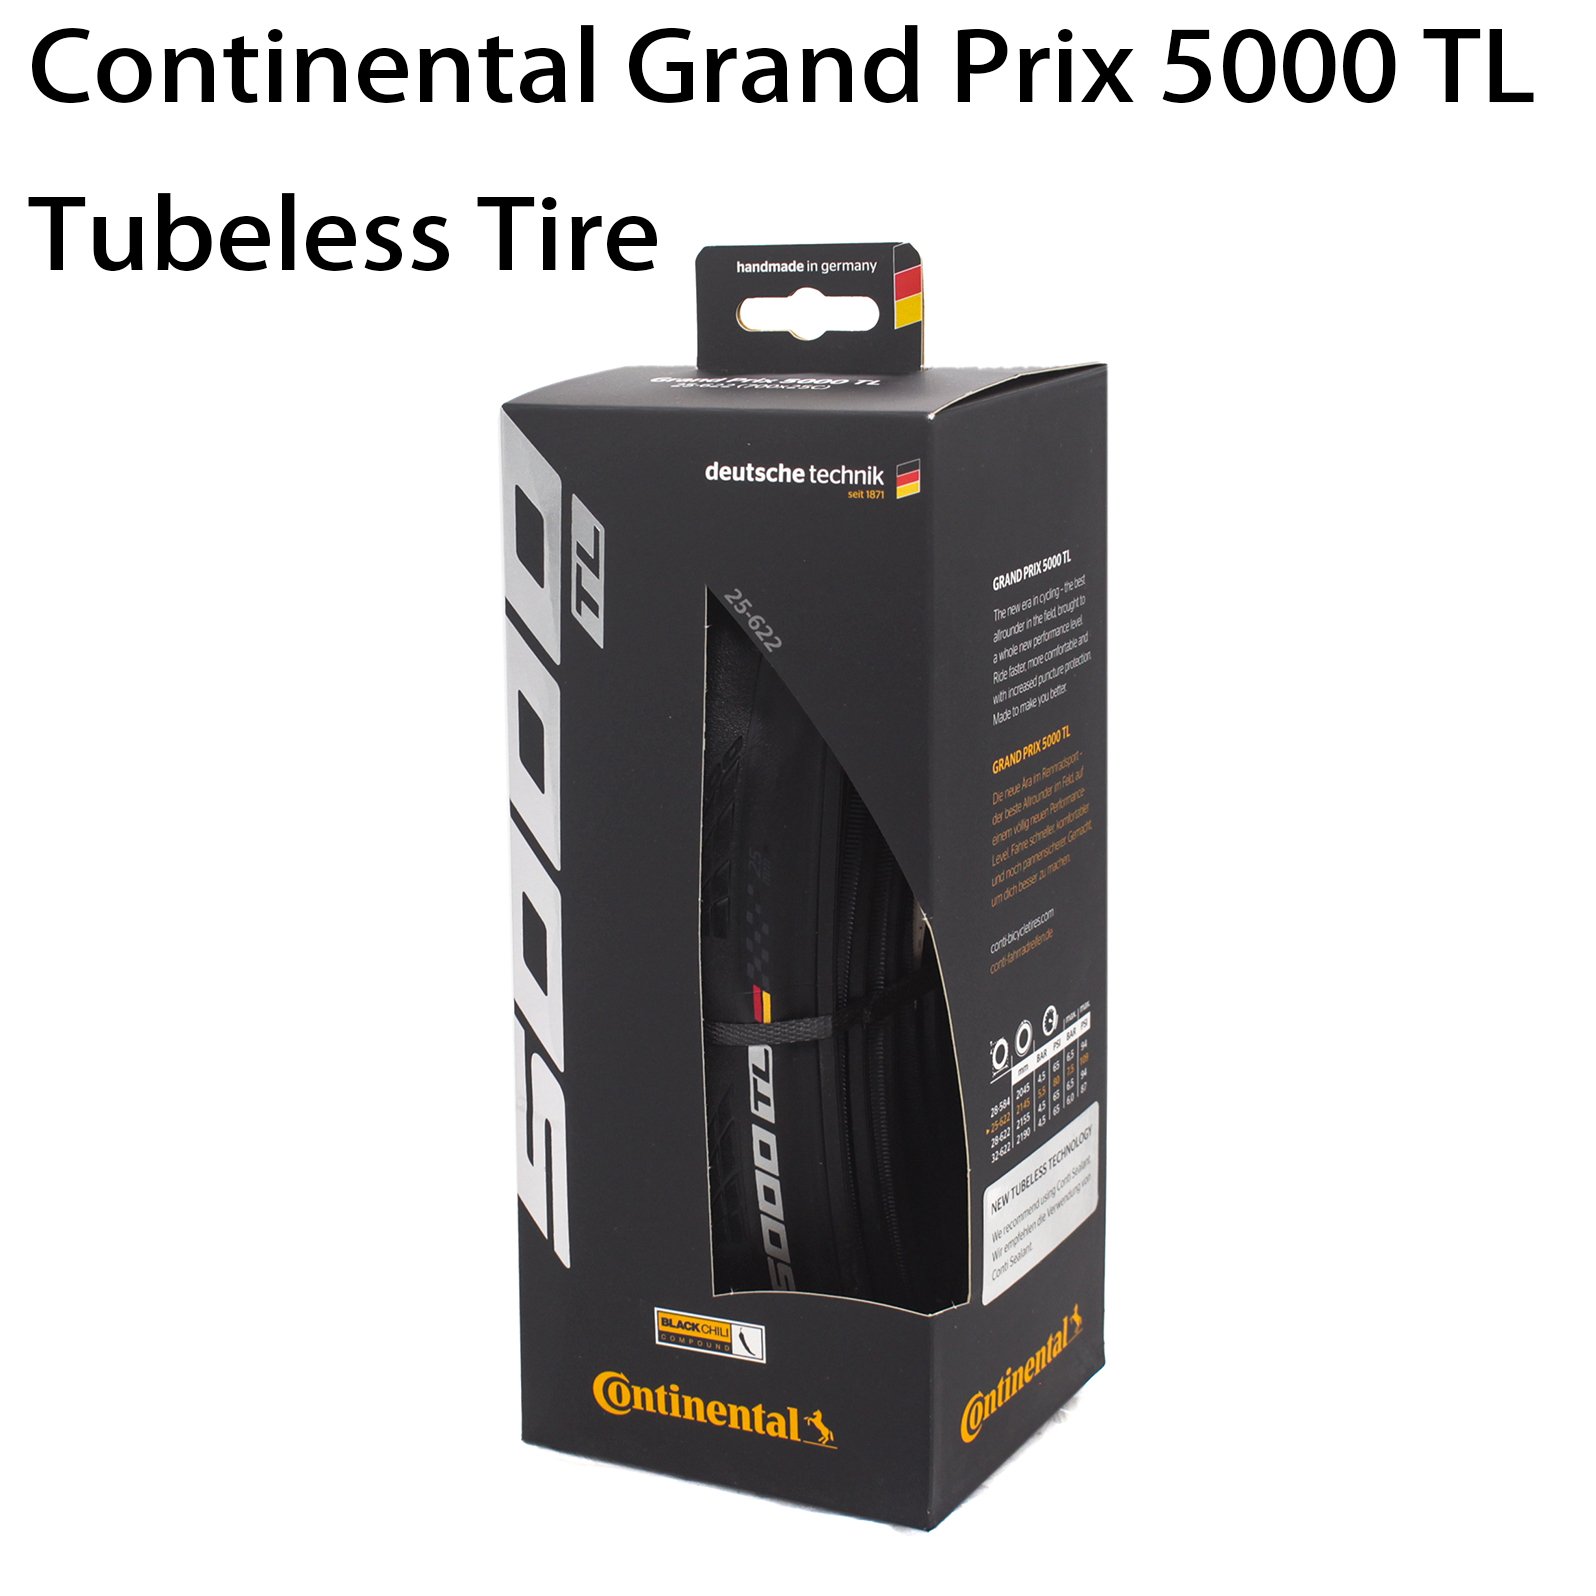 Continental Grand Prix 5000 TL 700c Tubeless Tire Single 700x25C